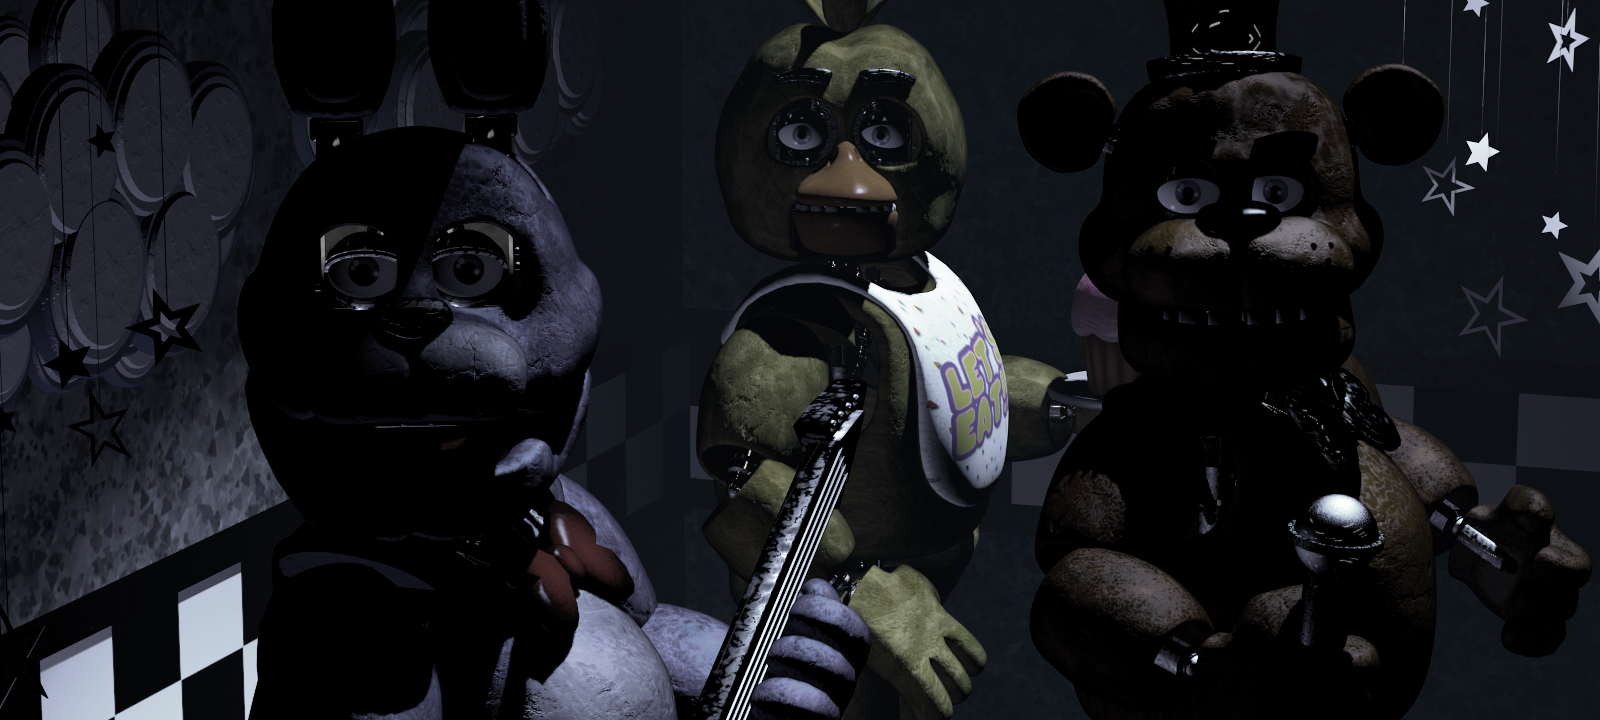 five nights at freddy's horror game